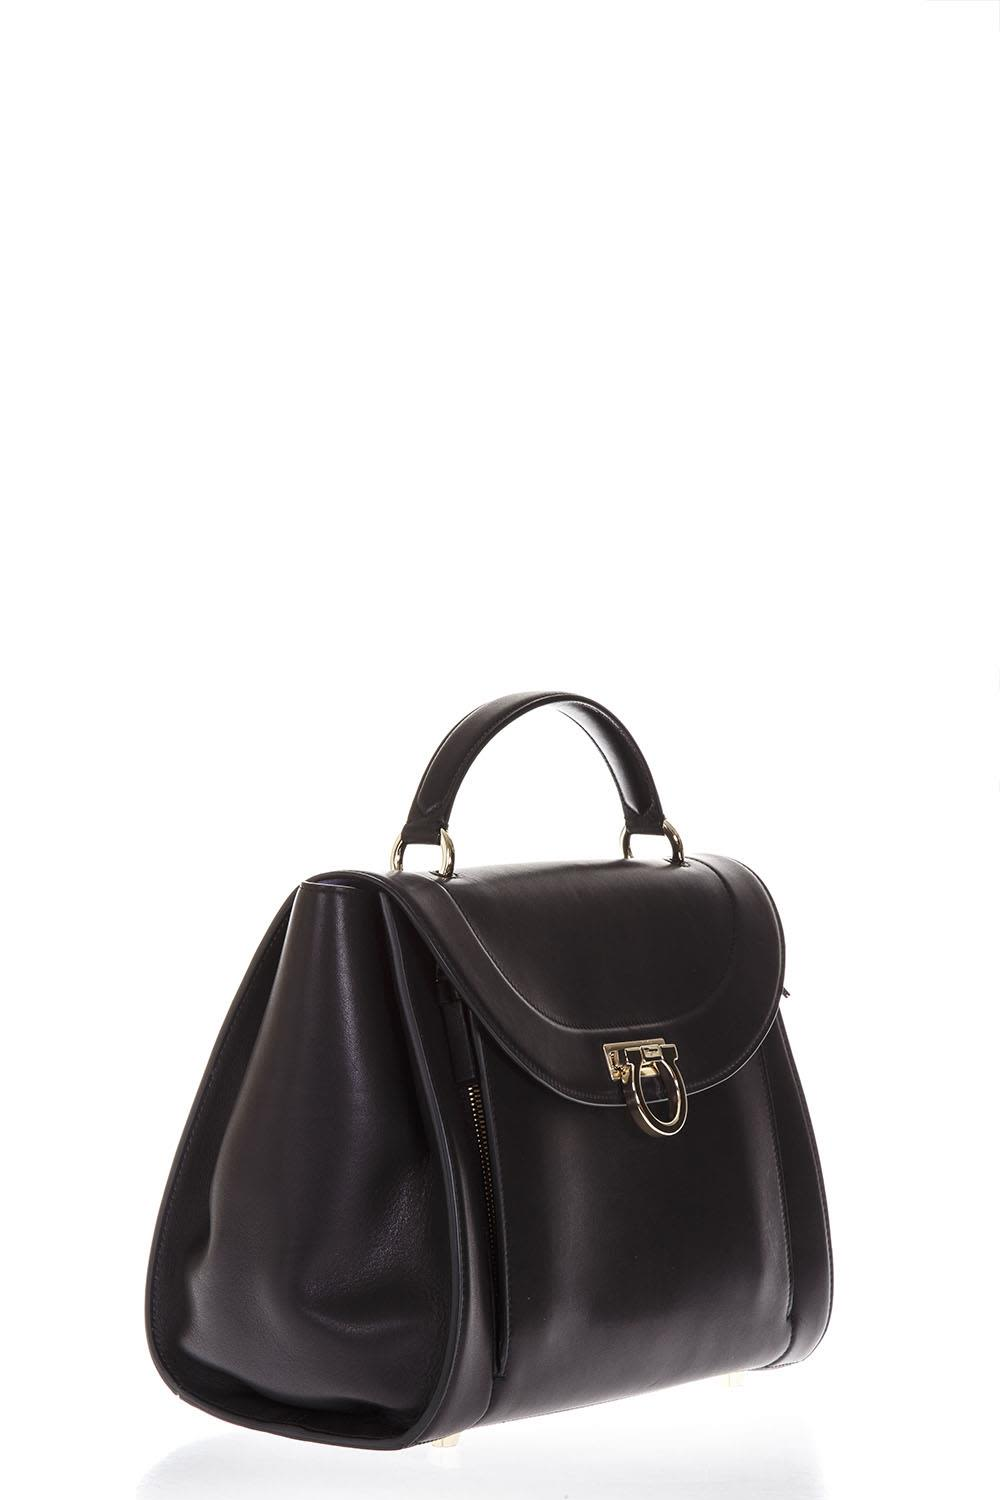 aad29f78fb43 Salvatore Ferragamo Salvatore Ferragamo Sofia Rainbow Black Leather ...